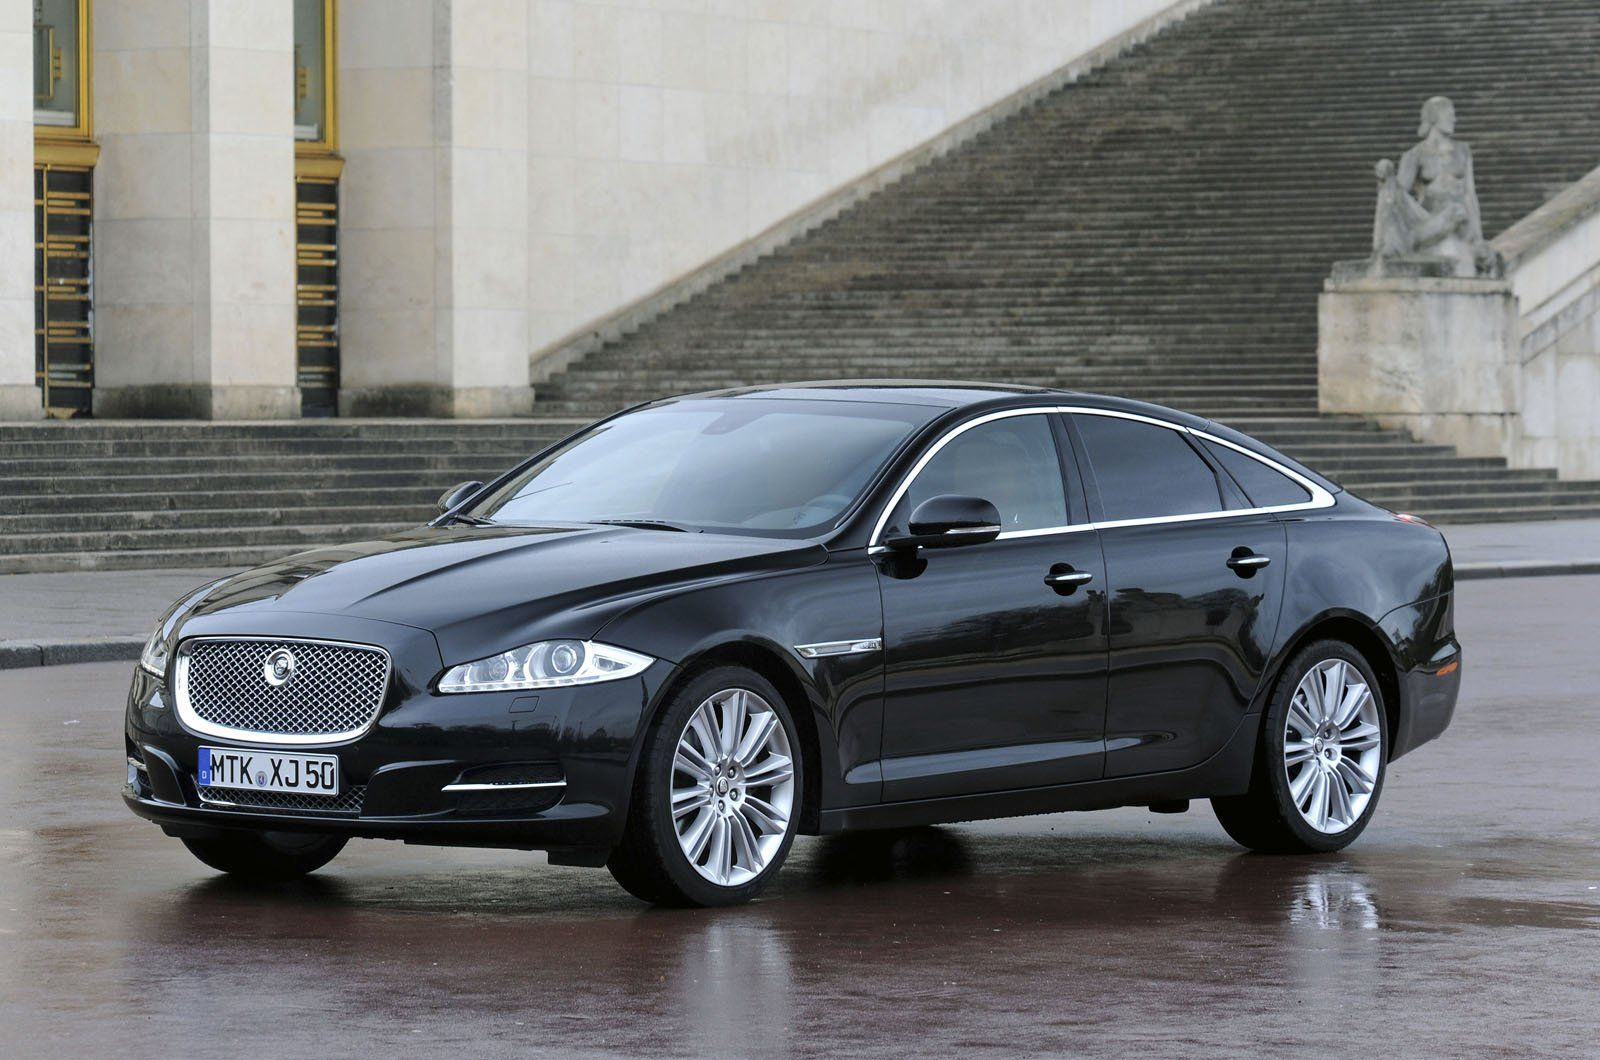 Hyperfastcars Tune For Jaguar Xj 5 0 Products Jaguar Xj